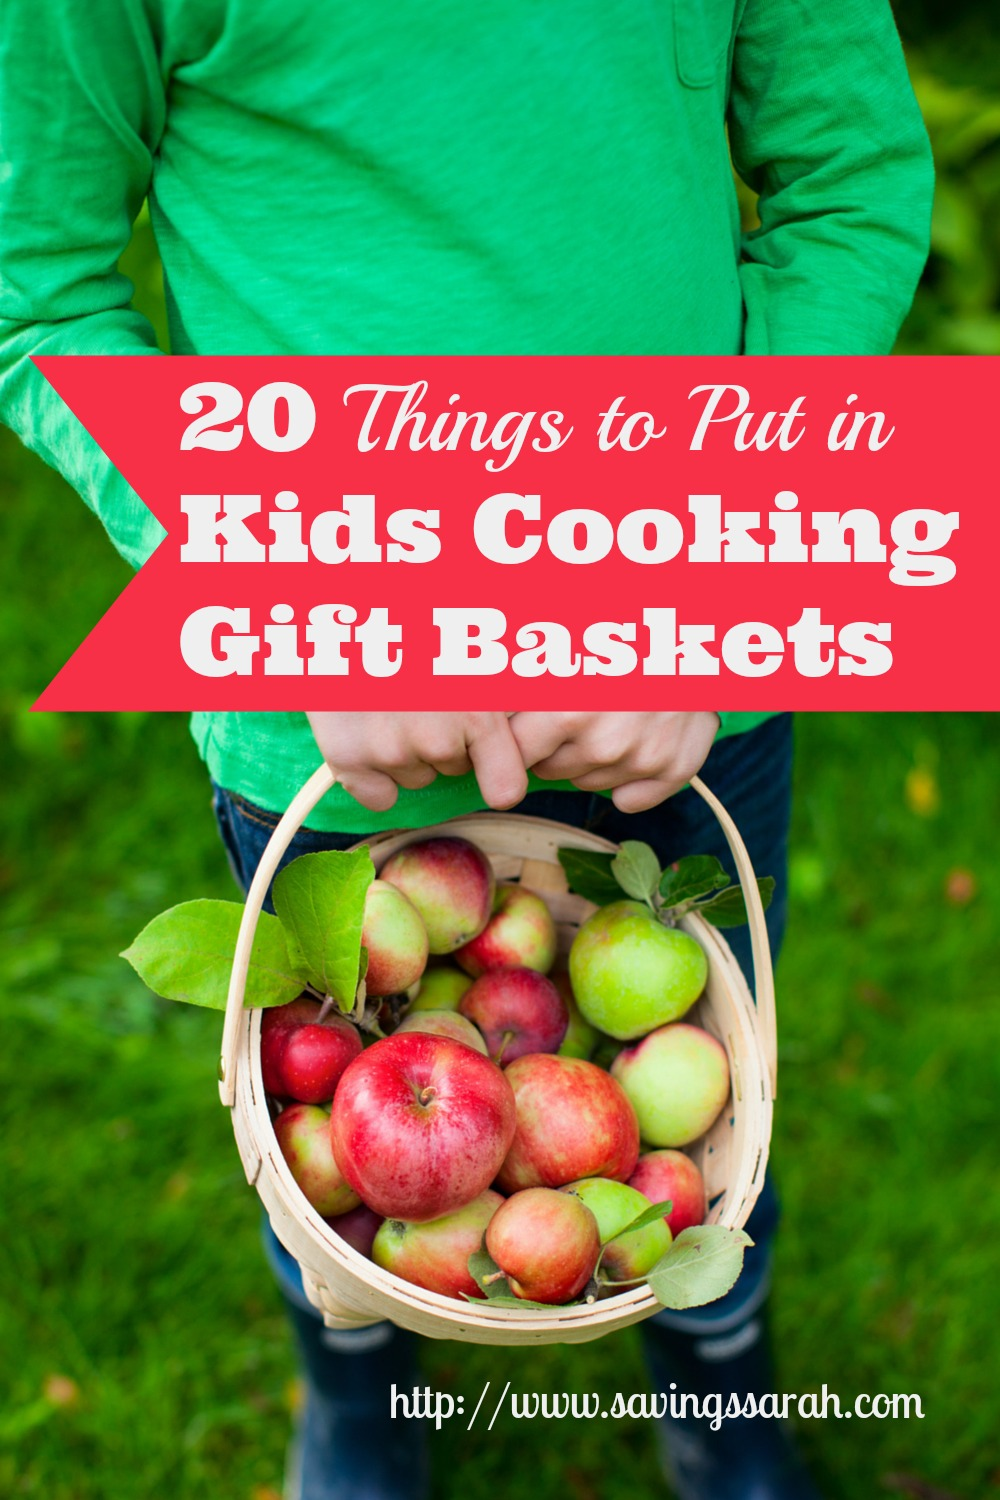 20 Things to Put in Kids Cooking Gift Baskets